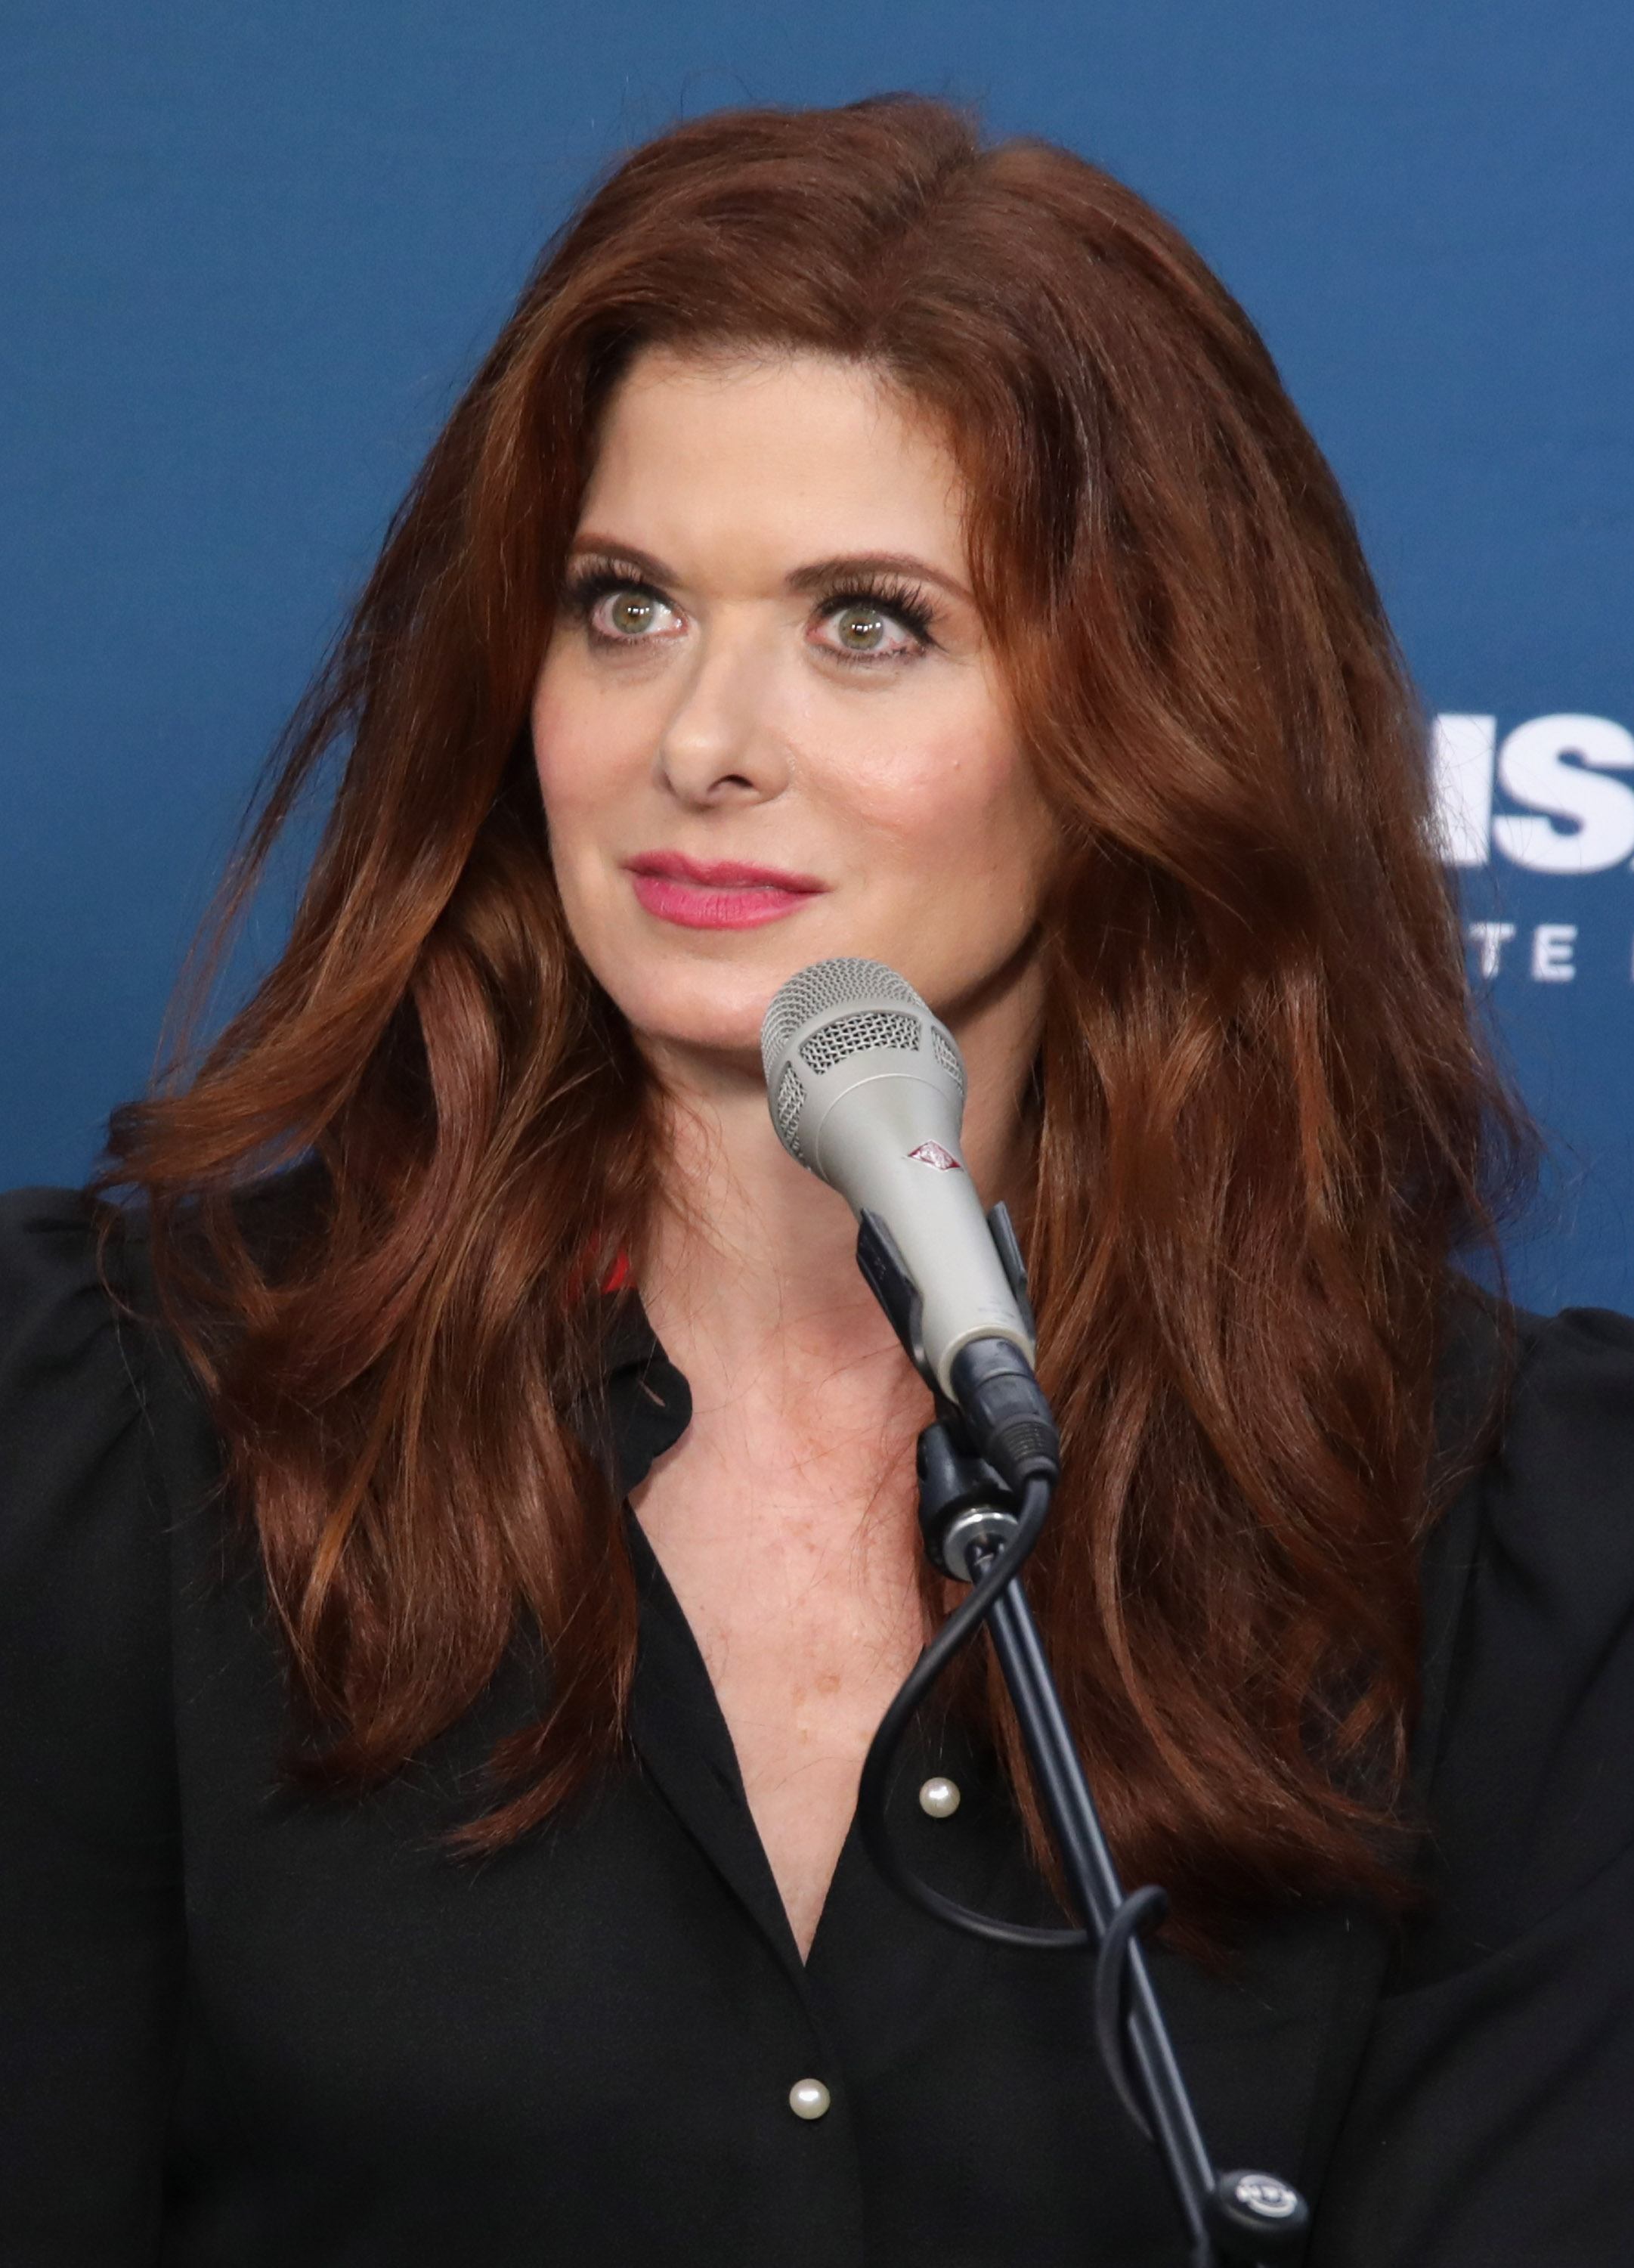 Actress Debra Messing takes part in SiriusXM's 'Town Hall' with the cast of 'Will & Grace' hosted by Andy Cohen (C) on September 25, 2017 in New York City.